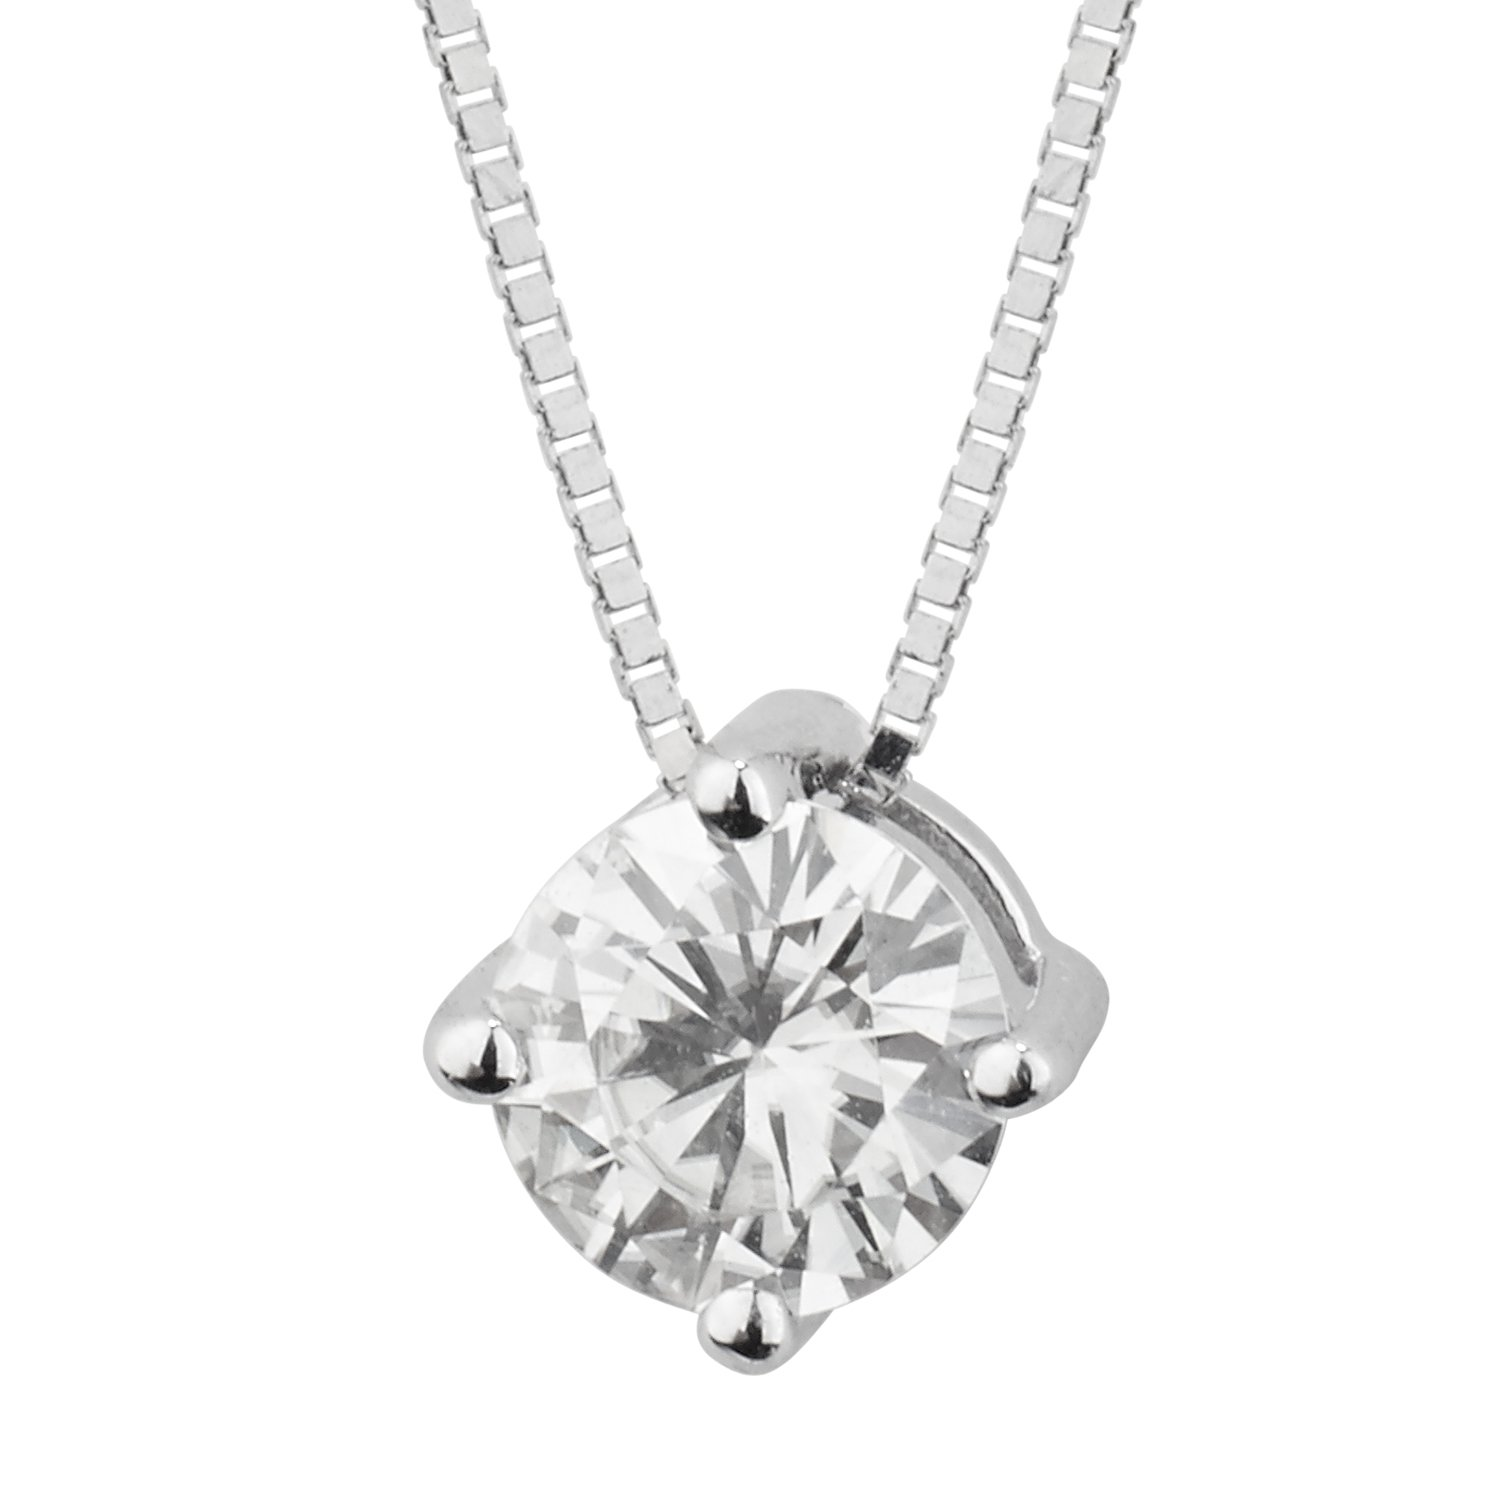 Forever Brilliant White Gold Round 5.0mm Moissanite Pendant Necklace, 0.50ct DEW By Charles & Colvard